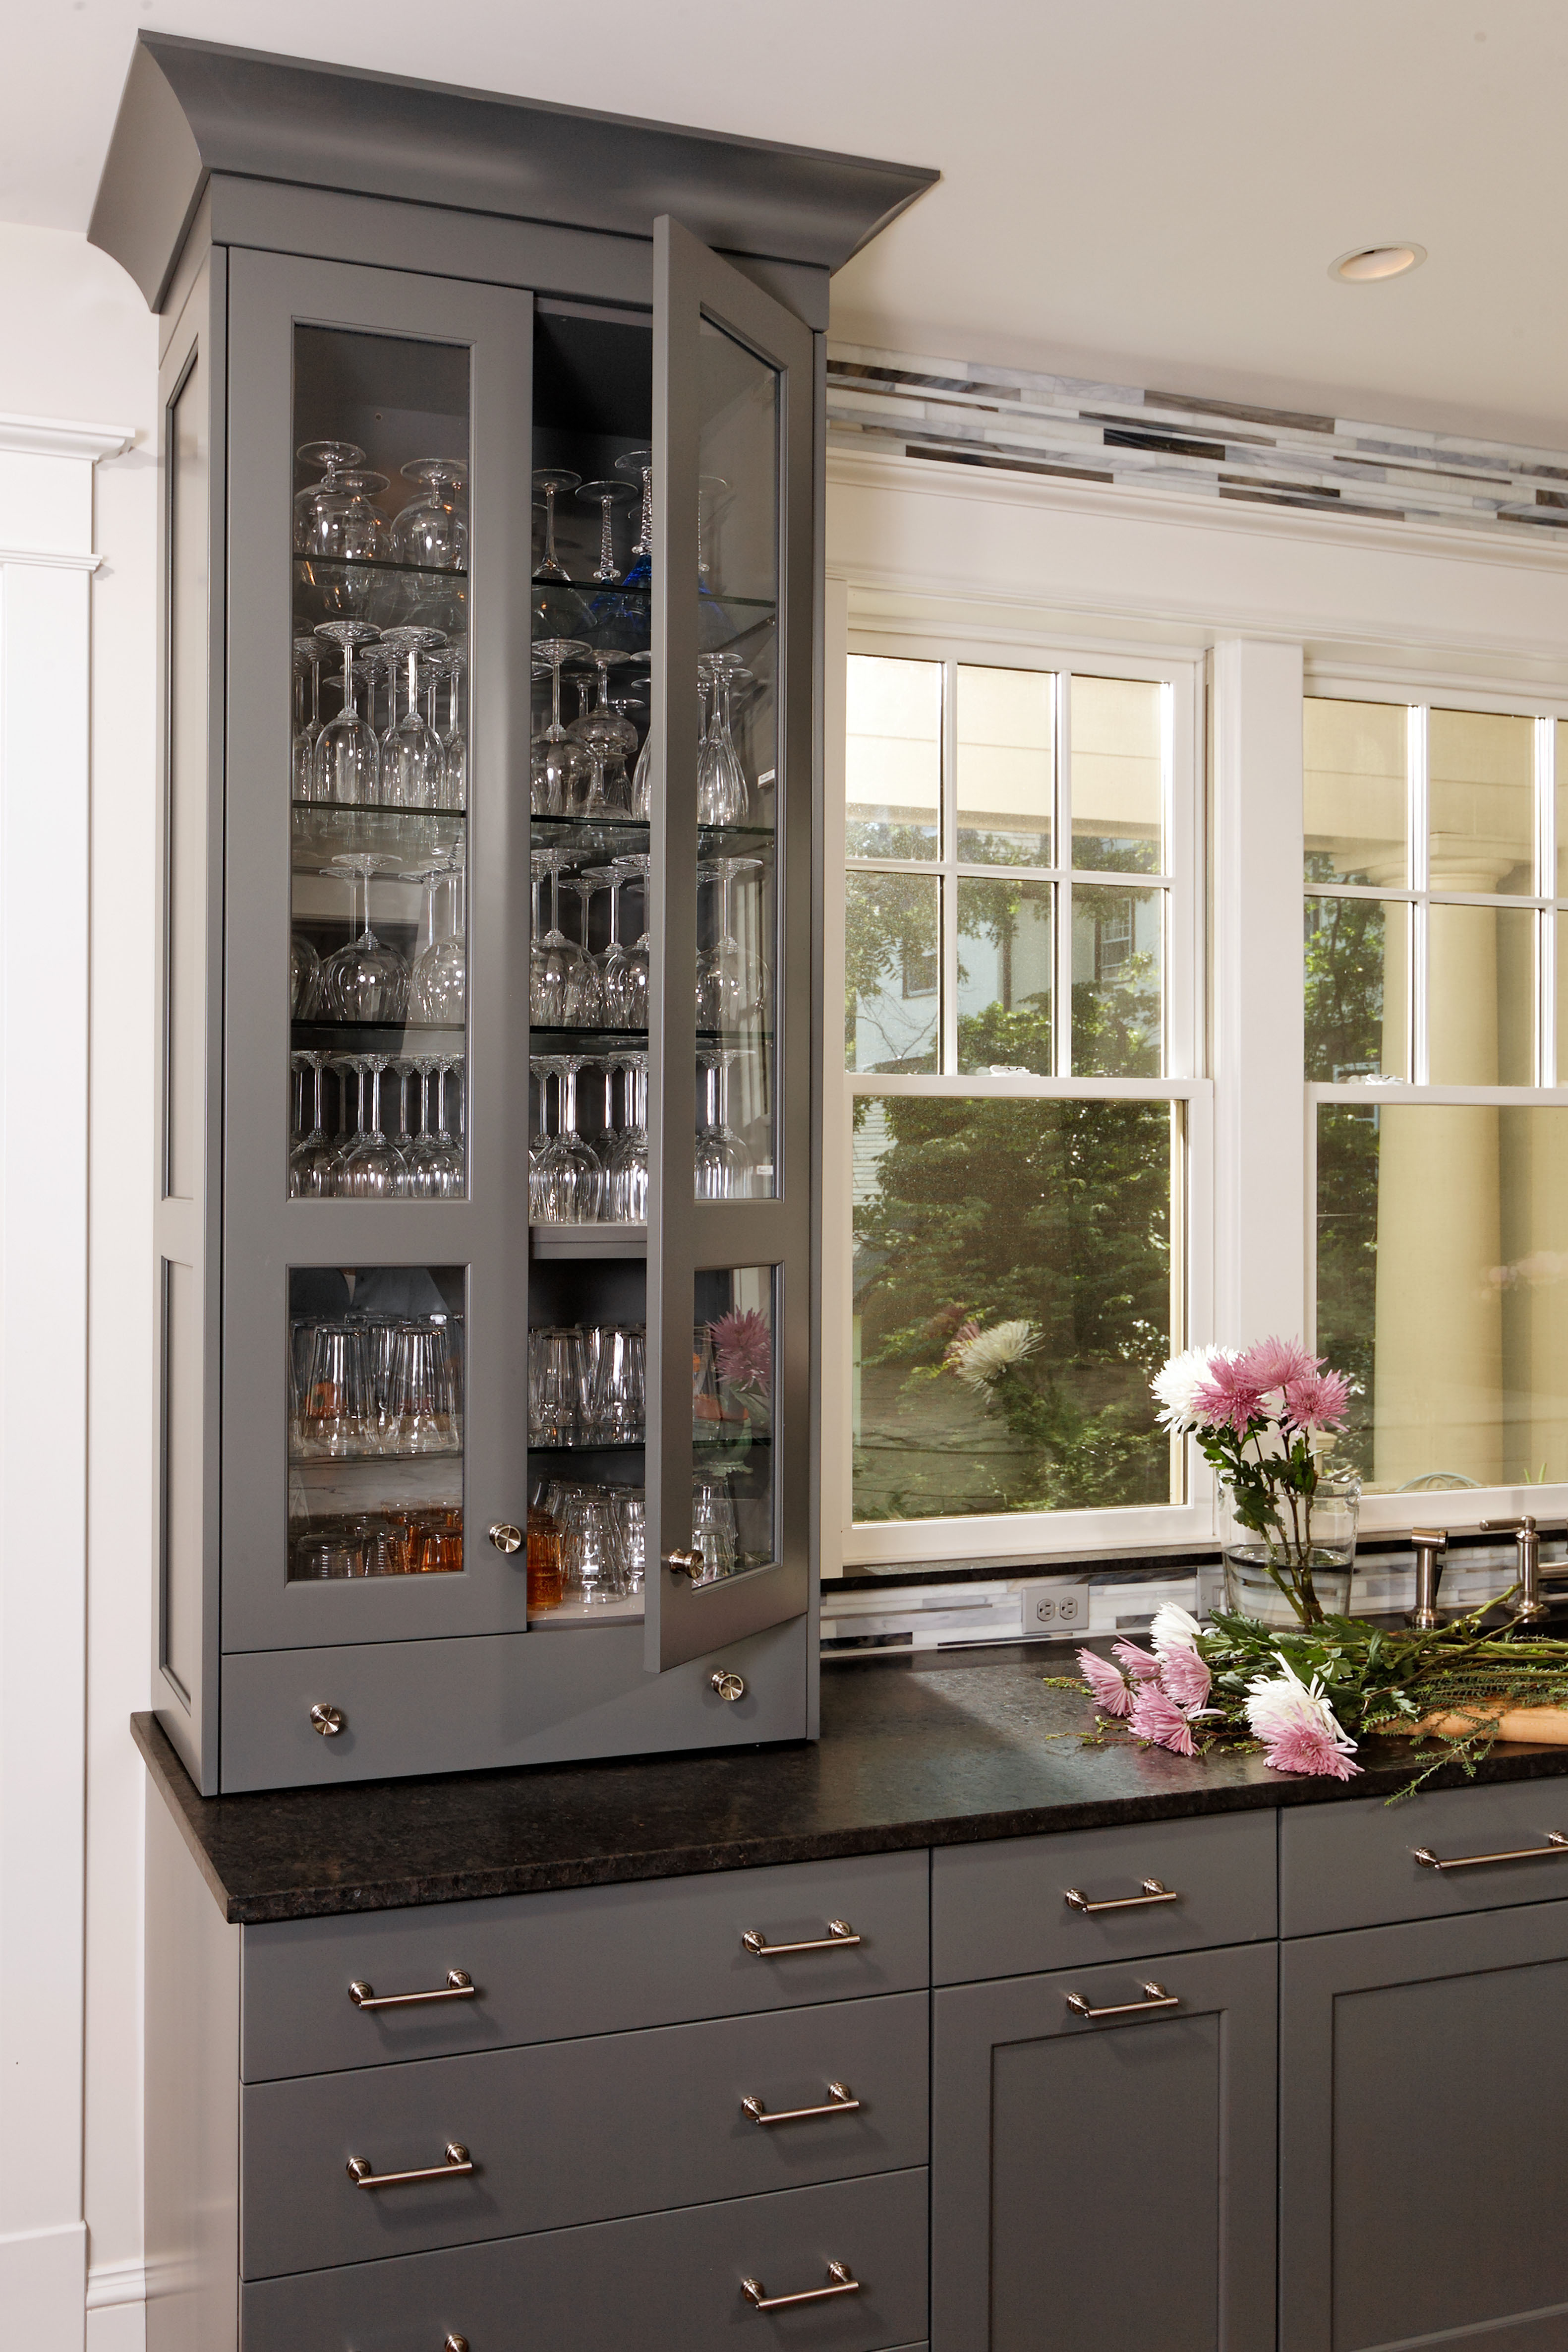 Cabinetry with Glass Doors